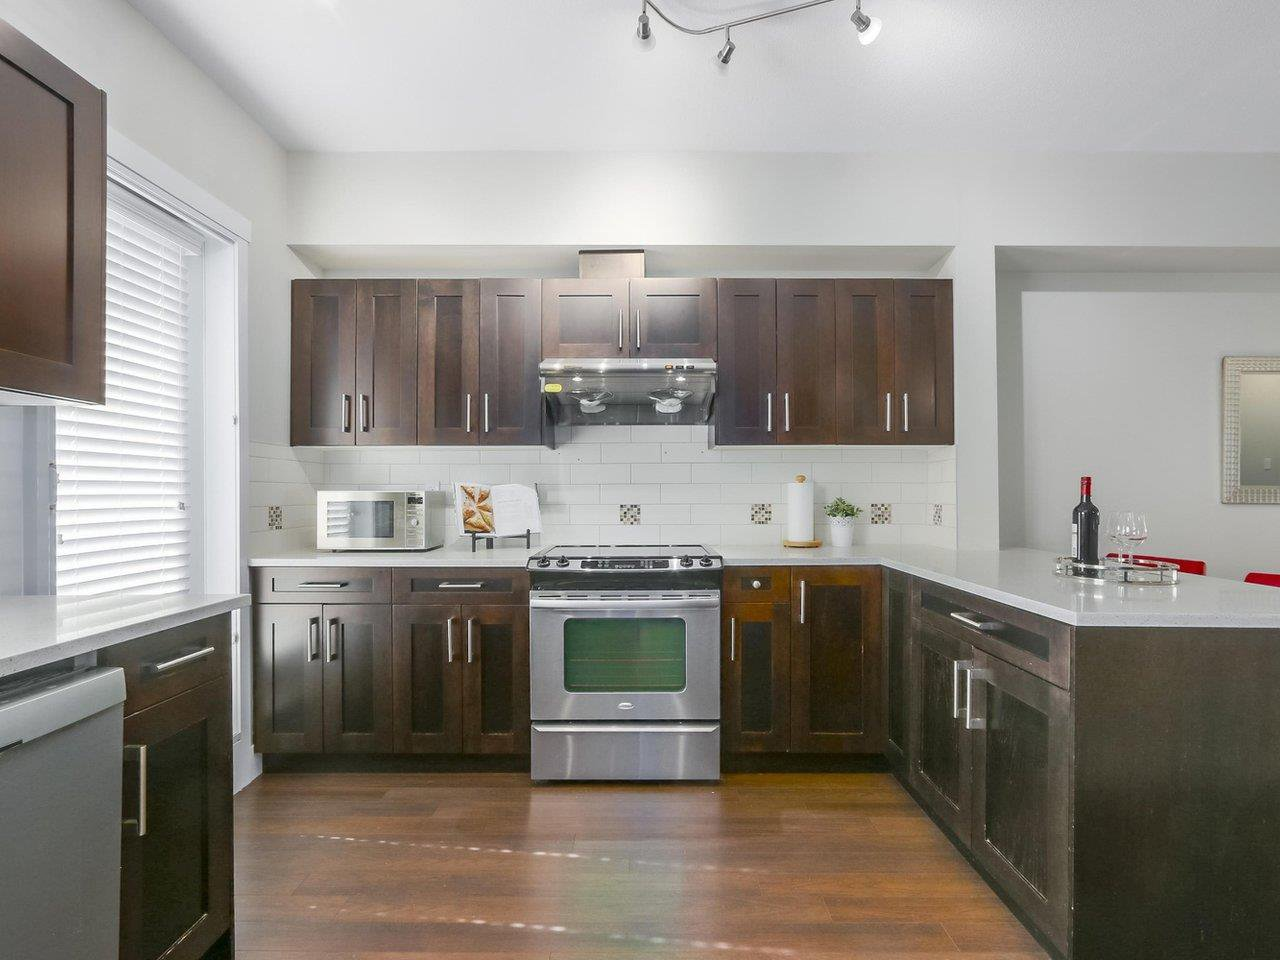 """Main Photo: 105 1418 CARTIER Avenue in Coquitlam: Maillardville Townhouse for sale in """"Cartier Place"""" : MLS®# R2404010"""